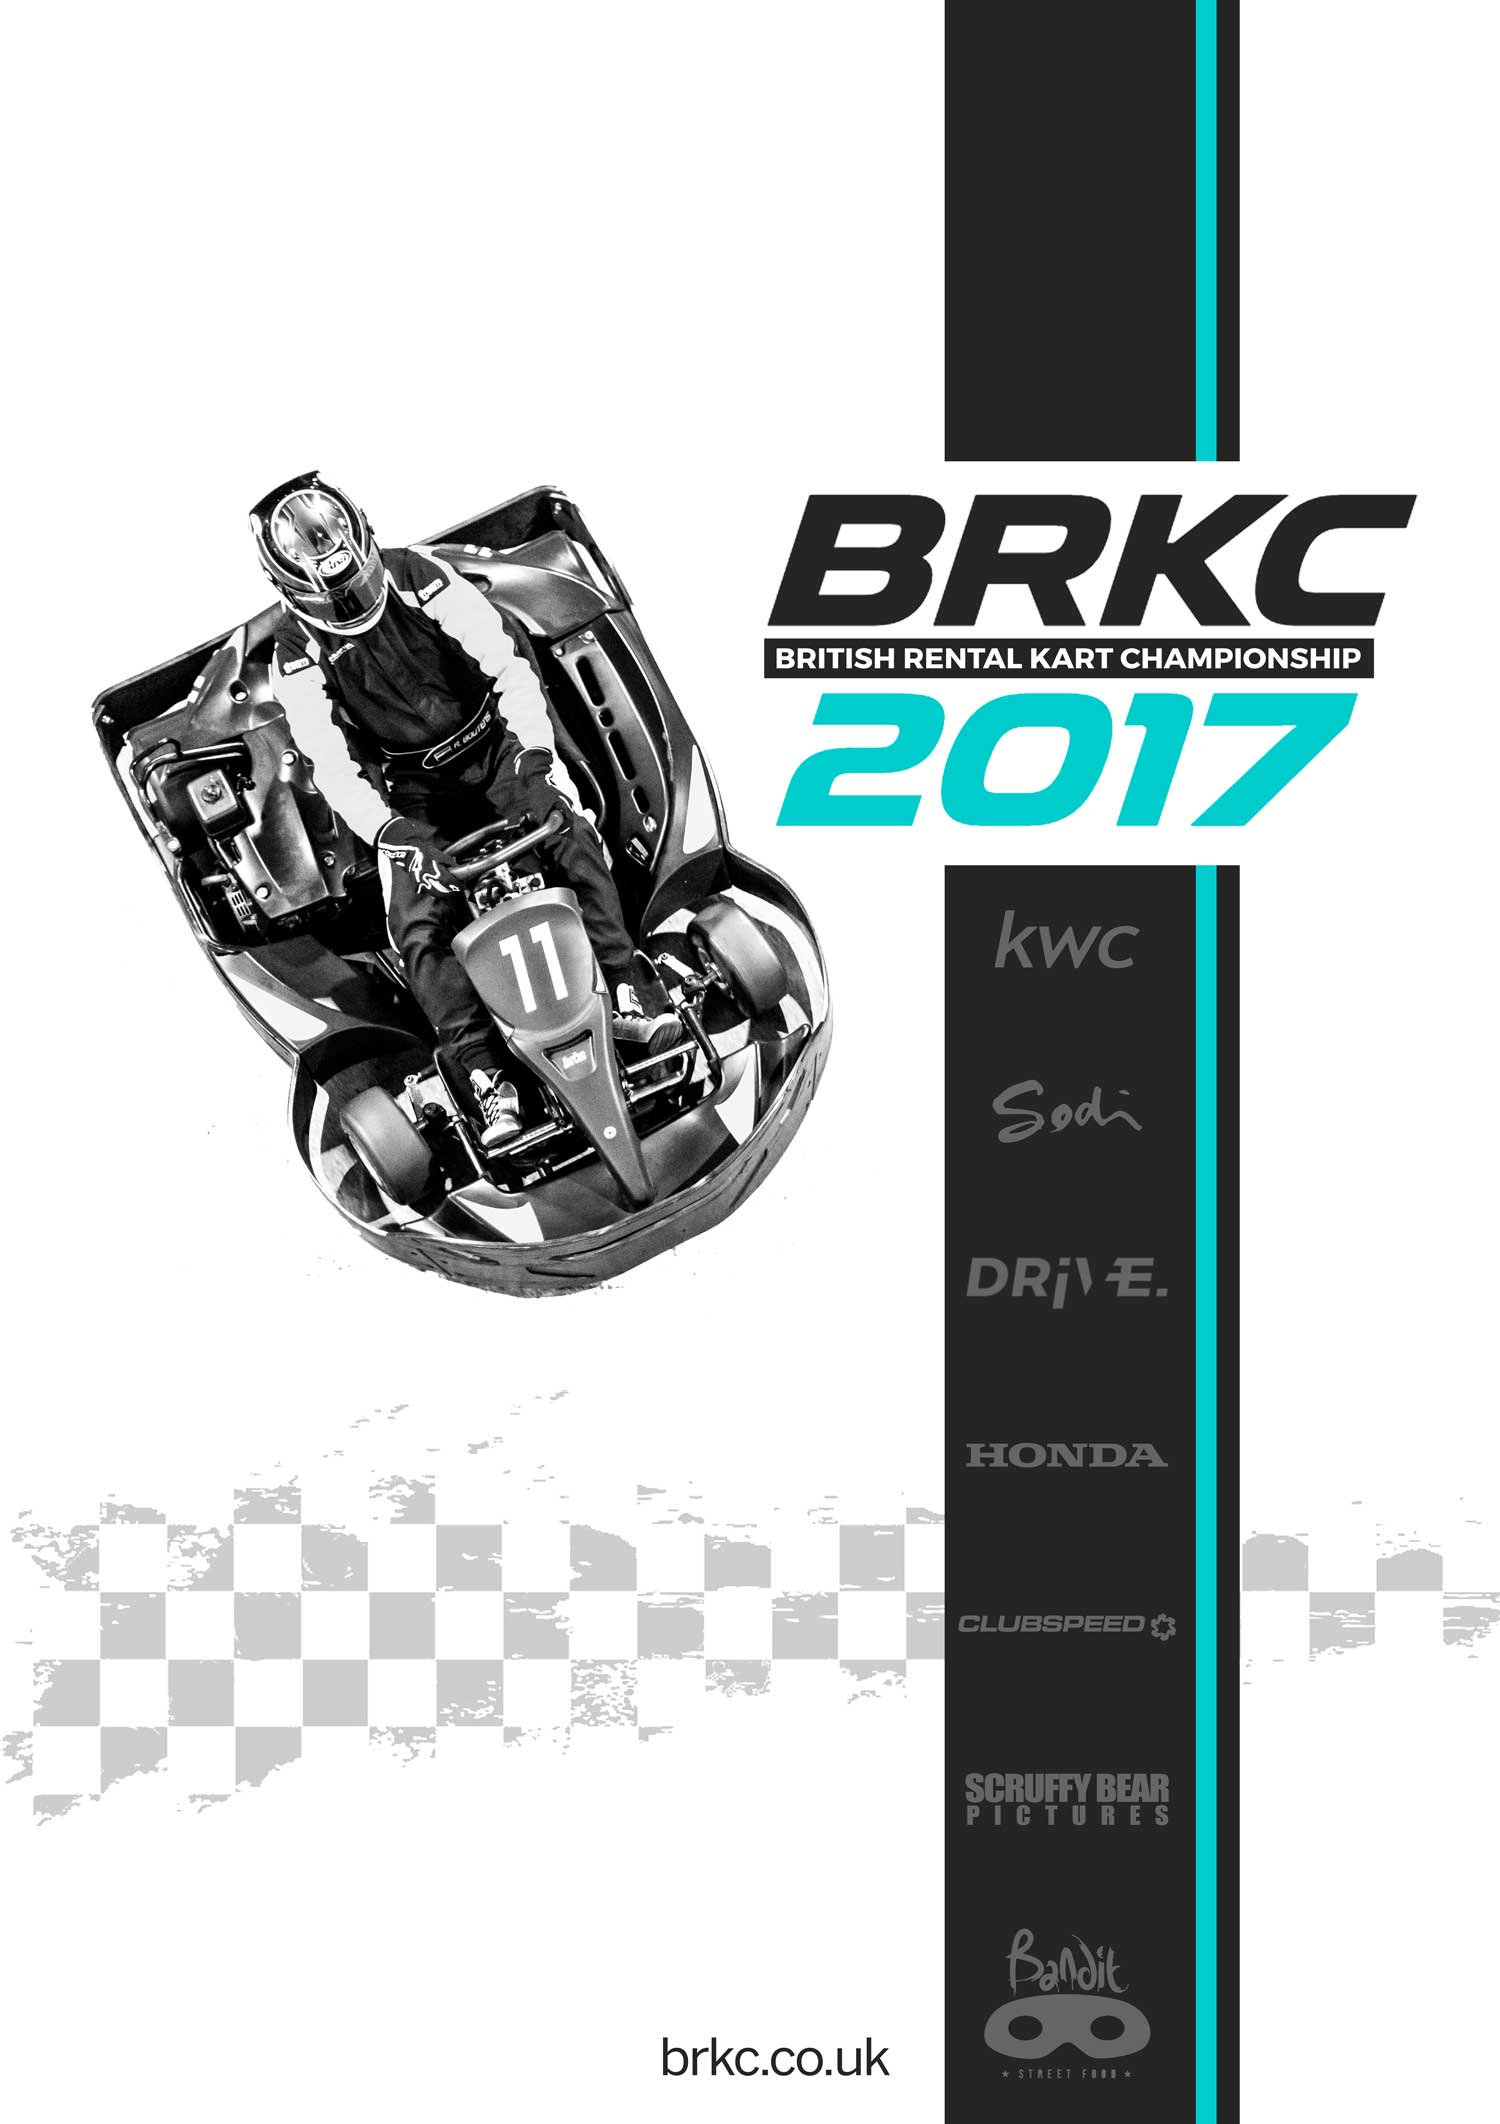 brkc-2017-sells-out